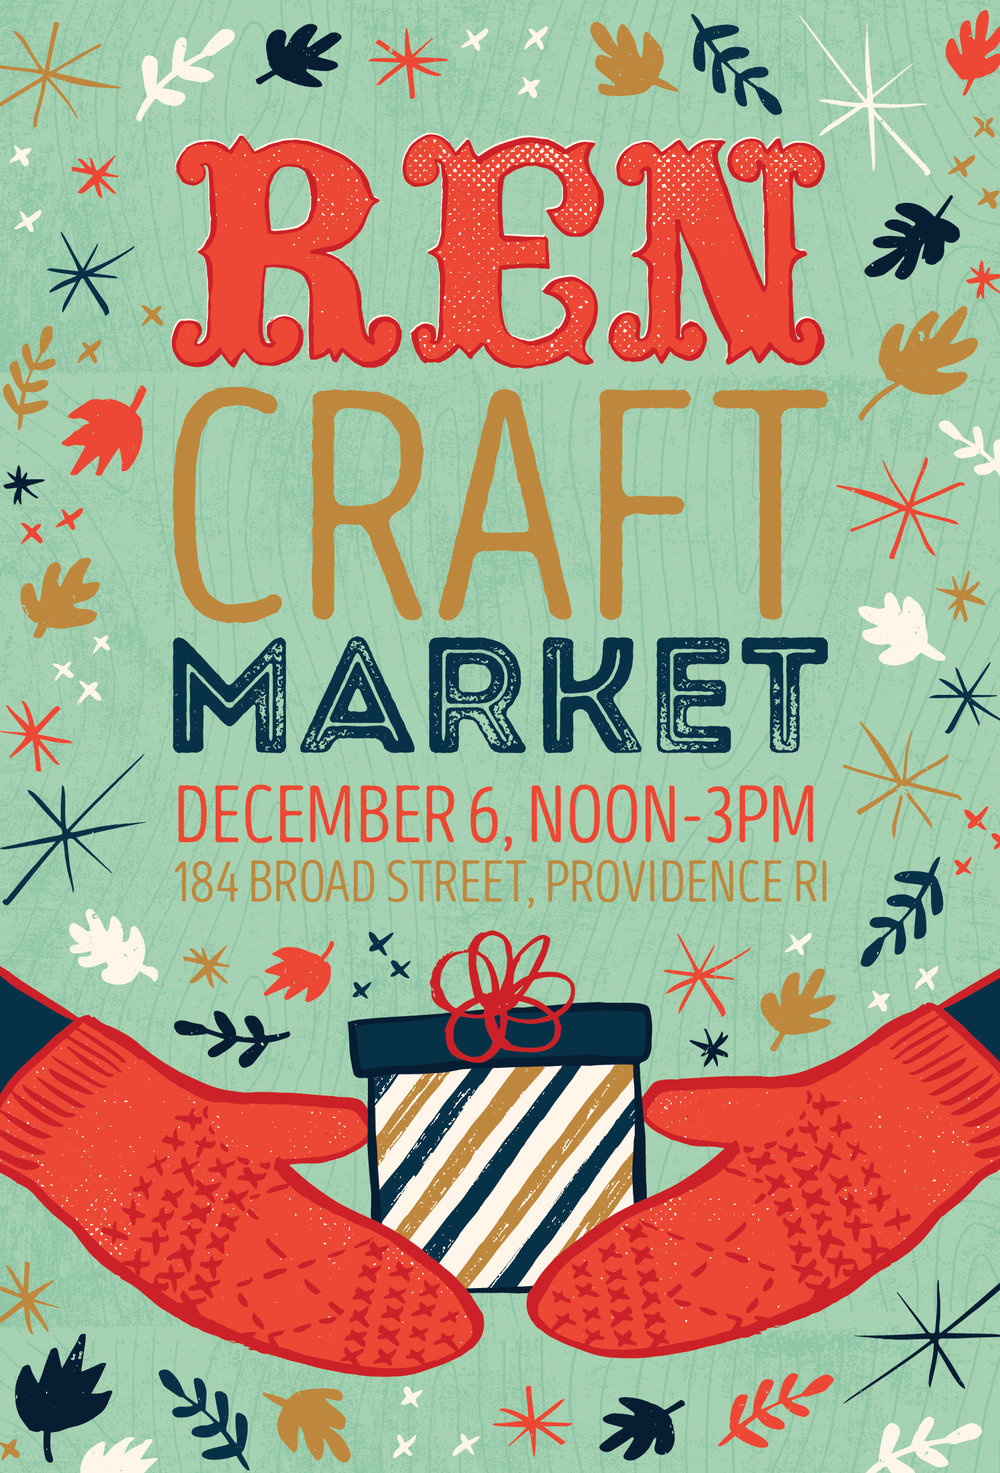 craft-market-poster-PART2-WEB.jpg